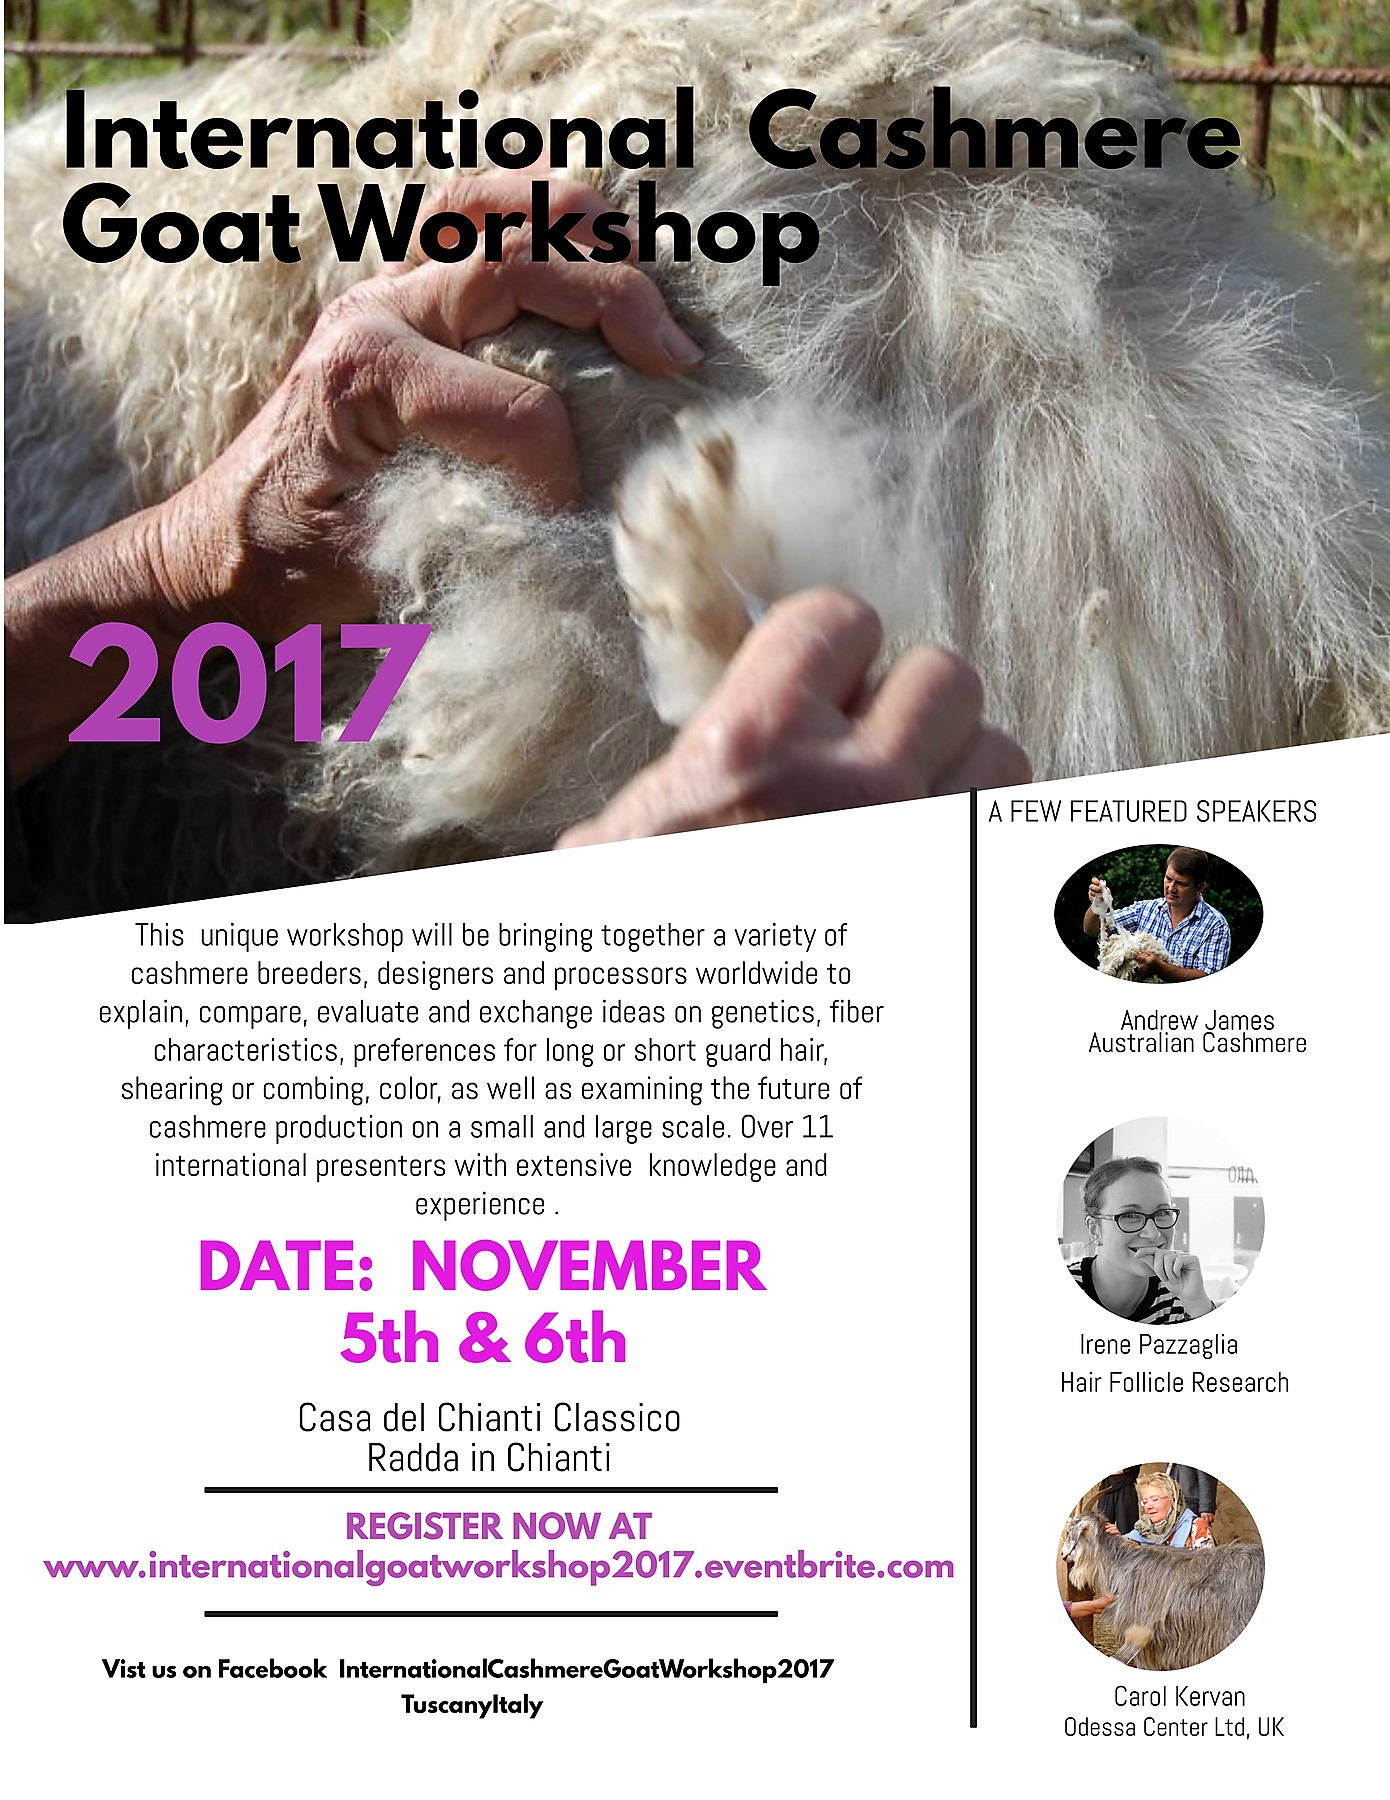 International Cashmere Goat Workshop